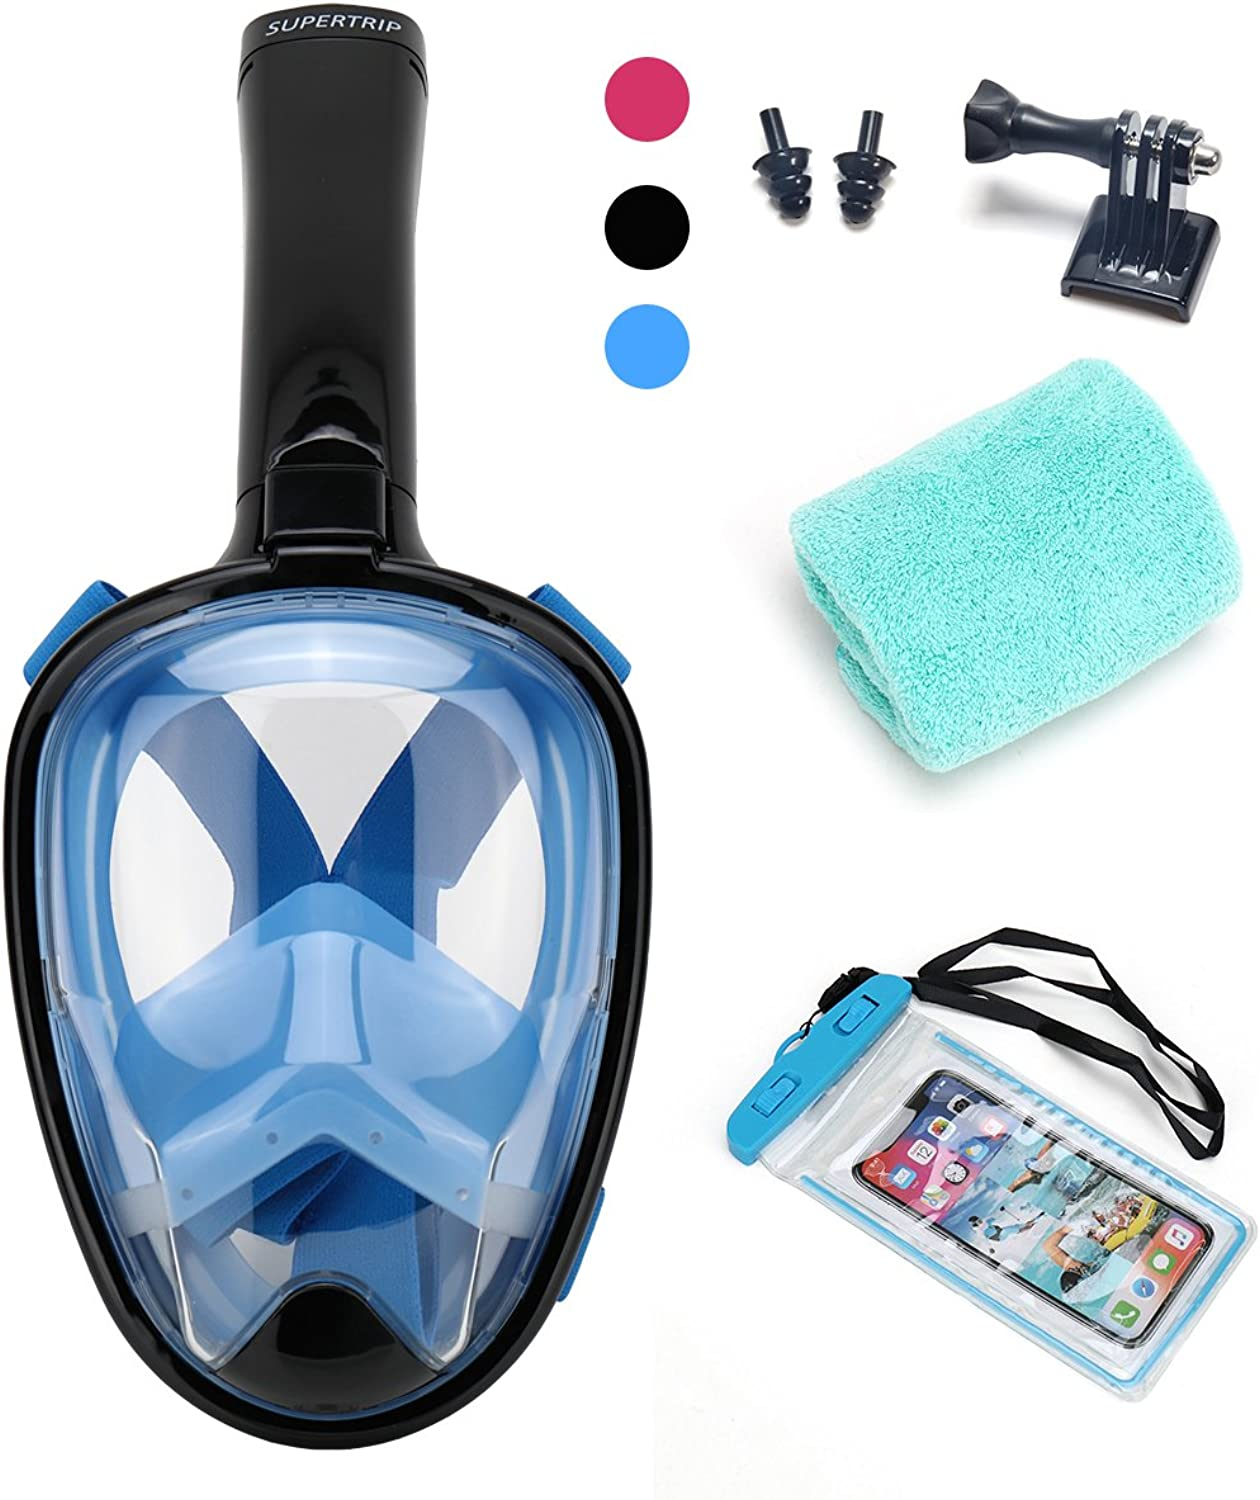 Supertrip Panoramic Full Face Snorkel Mask,AntiFog and AntiLeak FreeDiving Scuba Snorkeling Mask,Designed for Men and Women blueee Black L XL